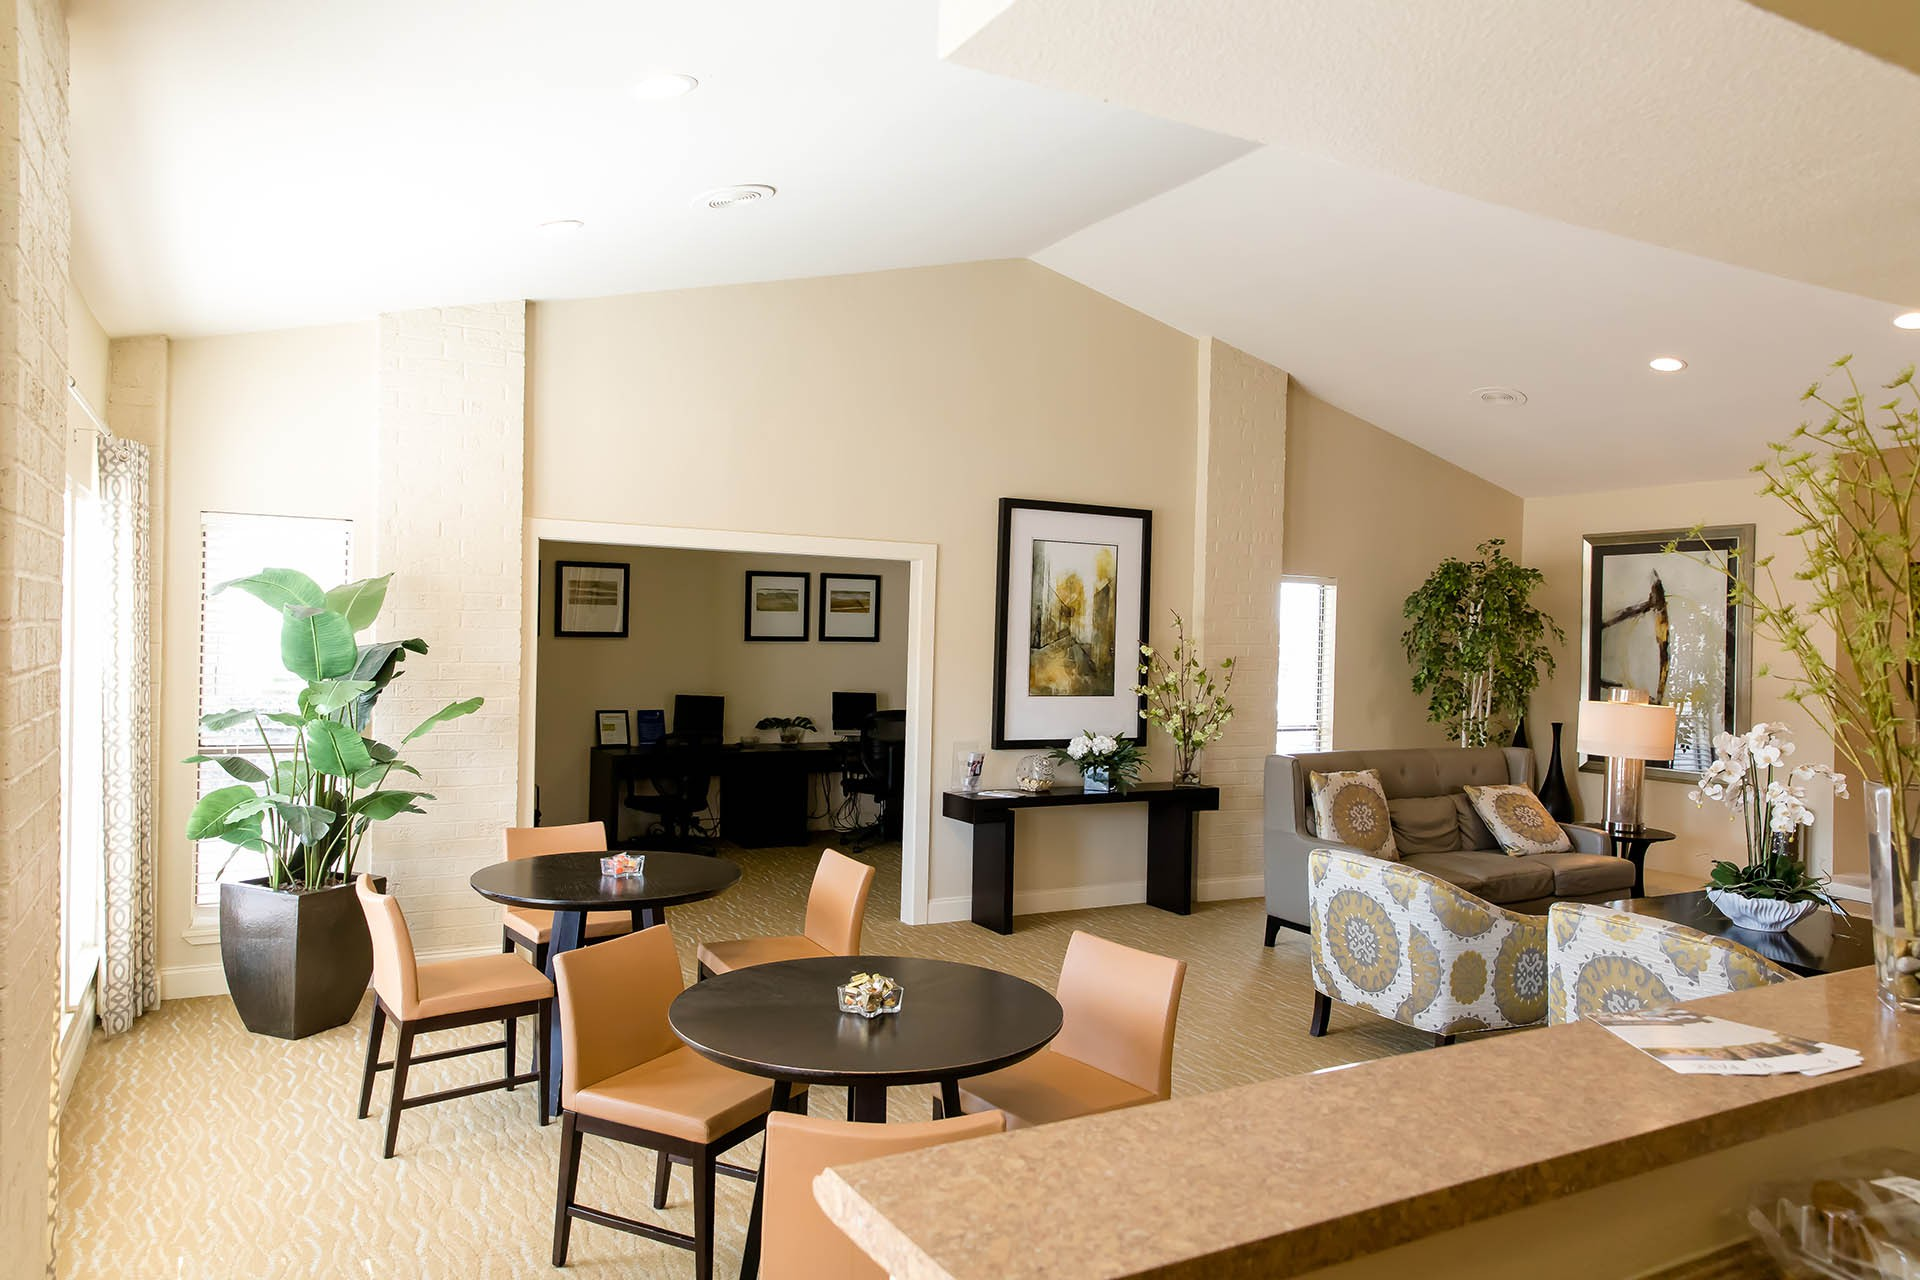 Apartments Near Midland College Park at Caldera for Midland College Students in Midland, TX